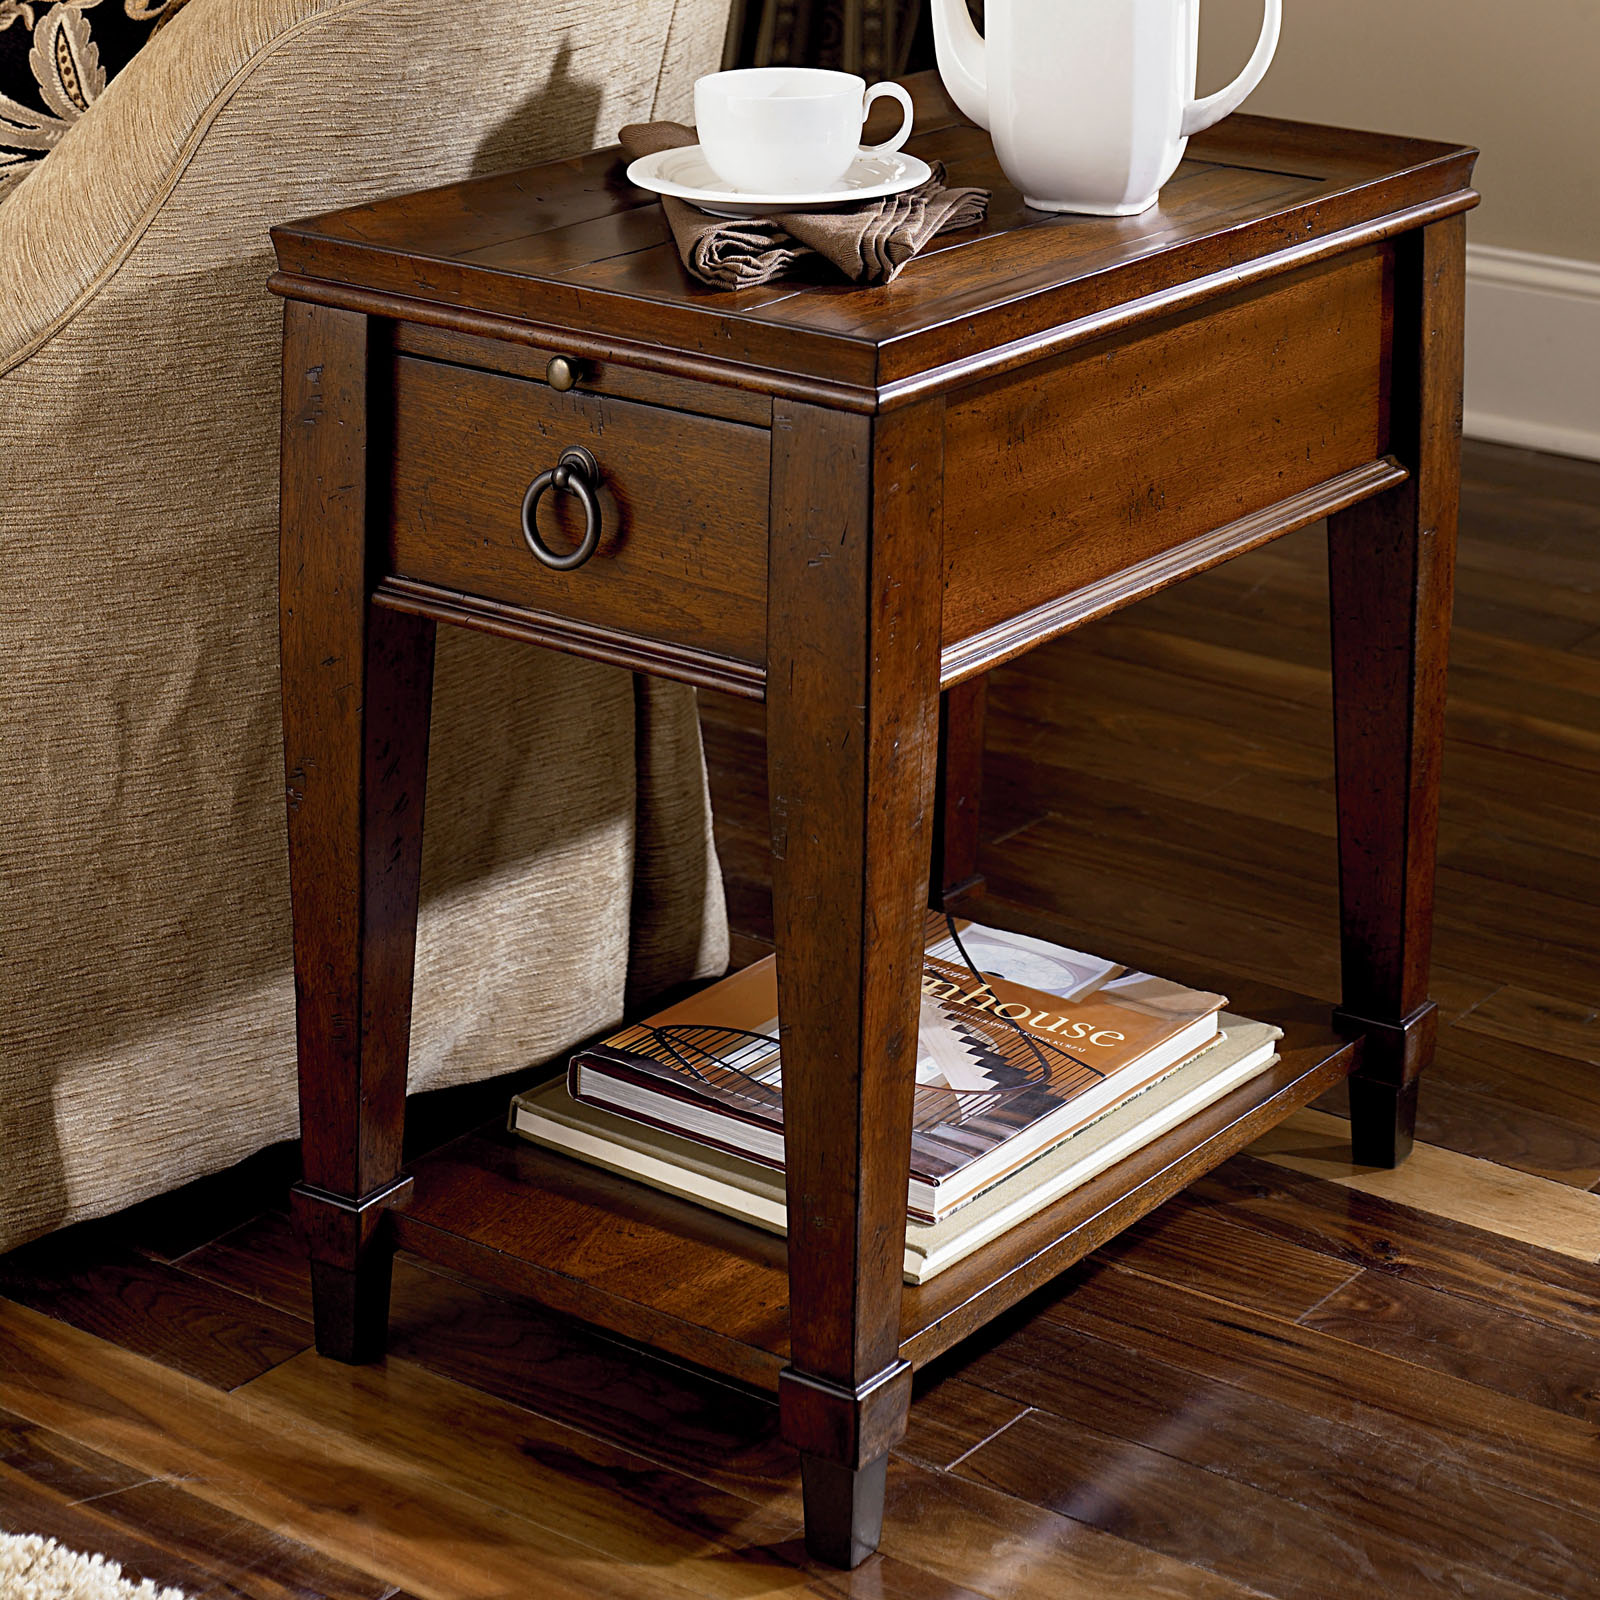 Hammary sunset valley chairside table rich mahogany end tables at hayneedle for Mahogany side tables living room